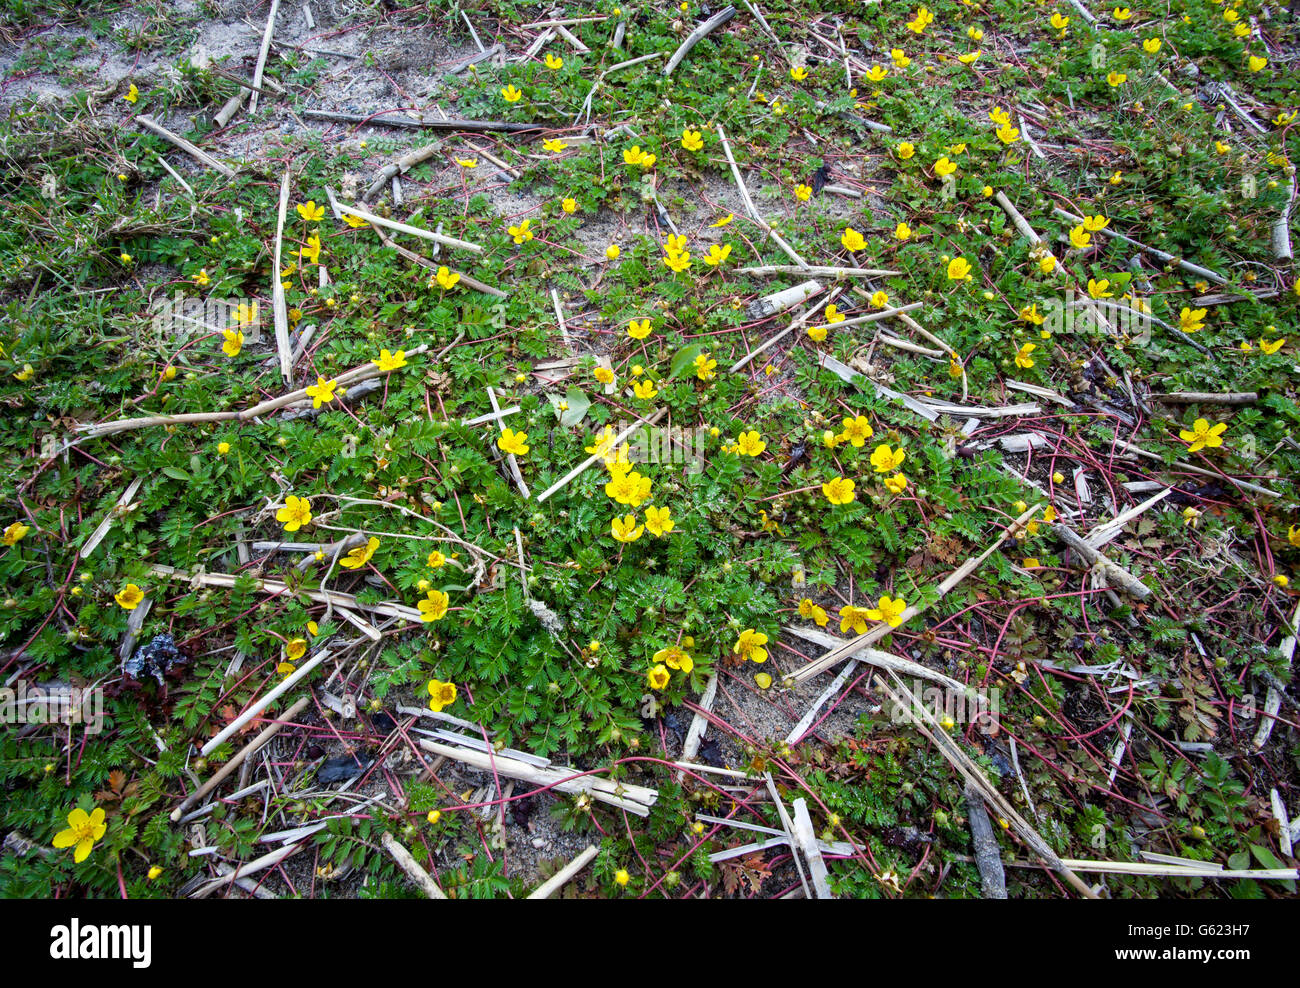 Common silverweed (Potentilla anserina) - Stock Image